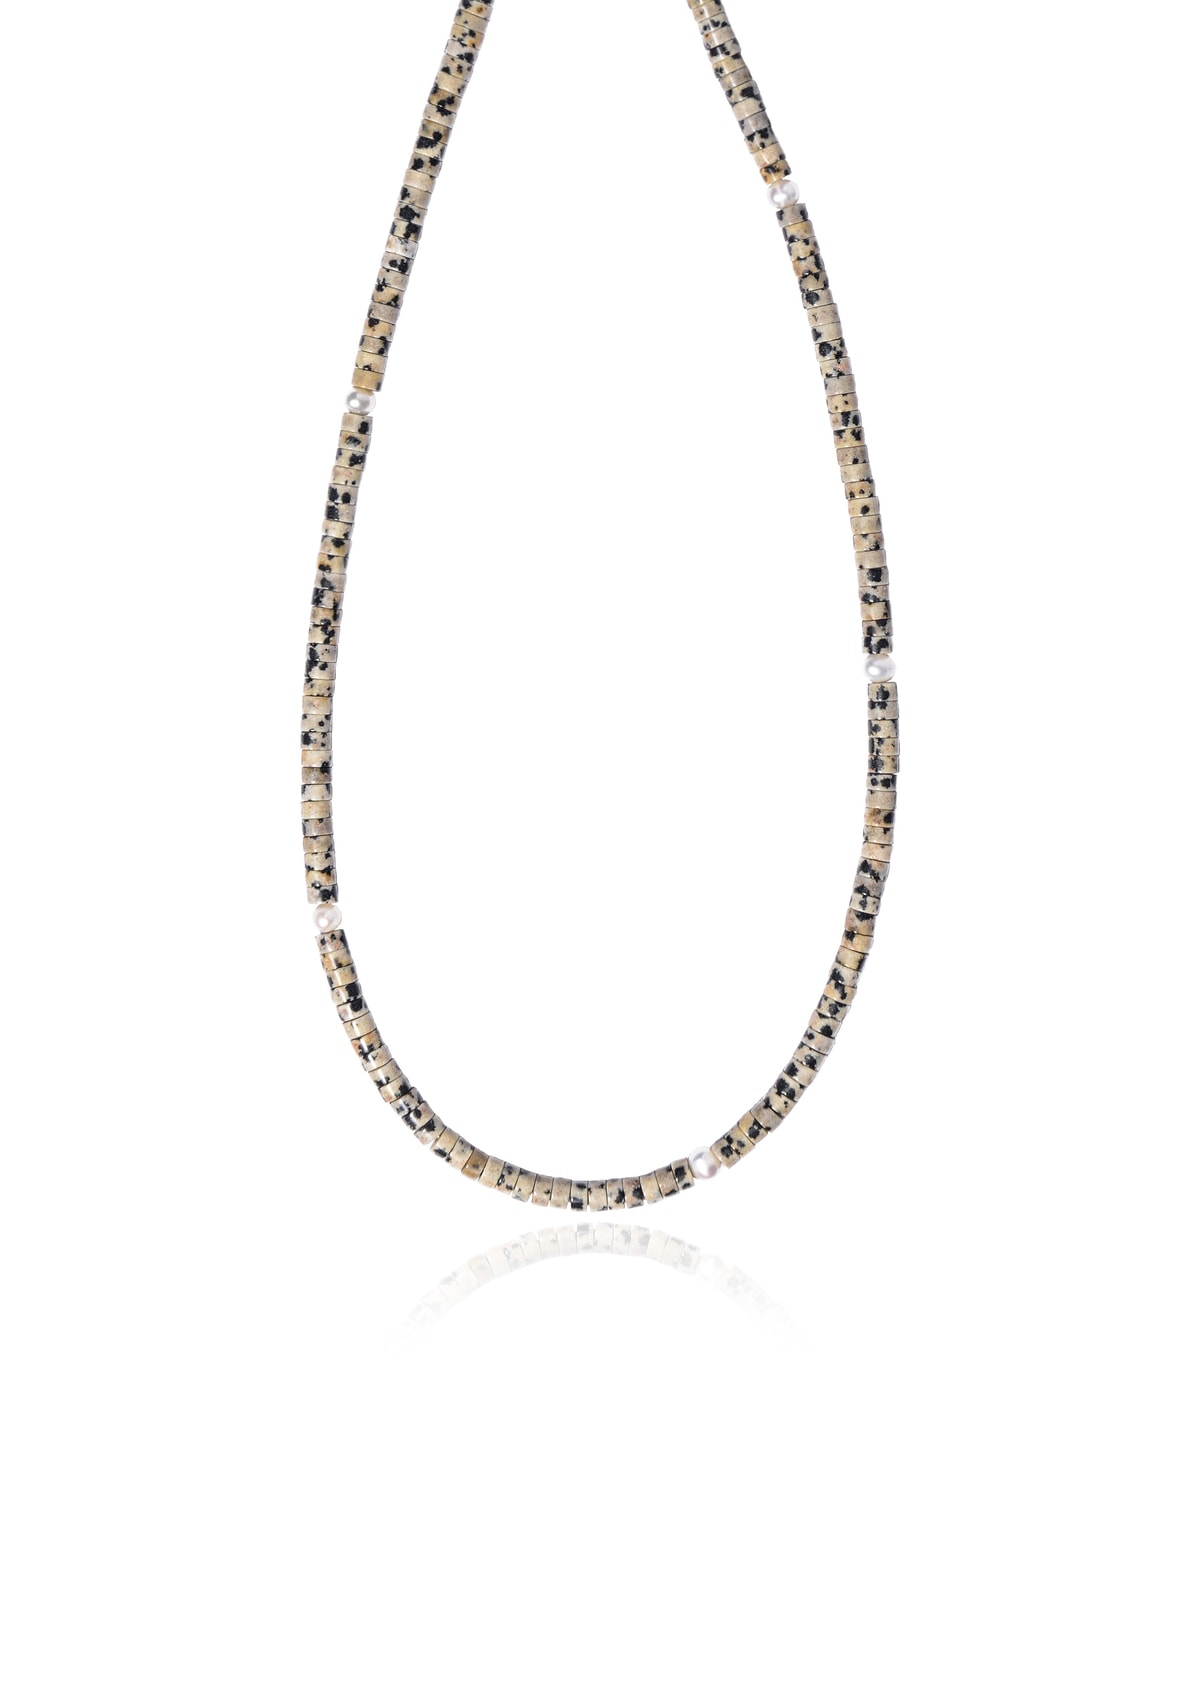 CROCODILE DUNDEE NECKLACE - HERMINA ATHENS X STYLELOVE COLLECTION